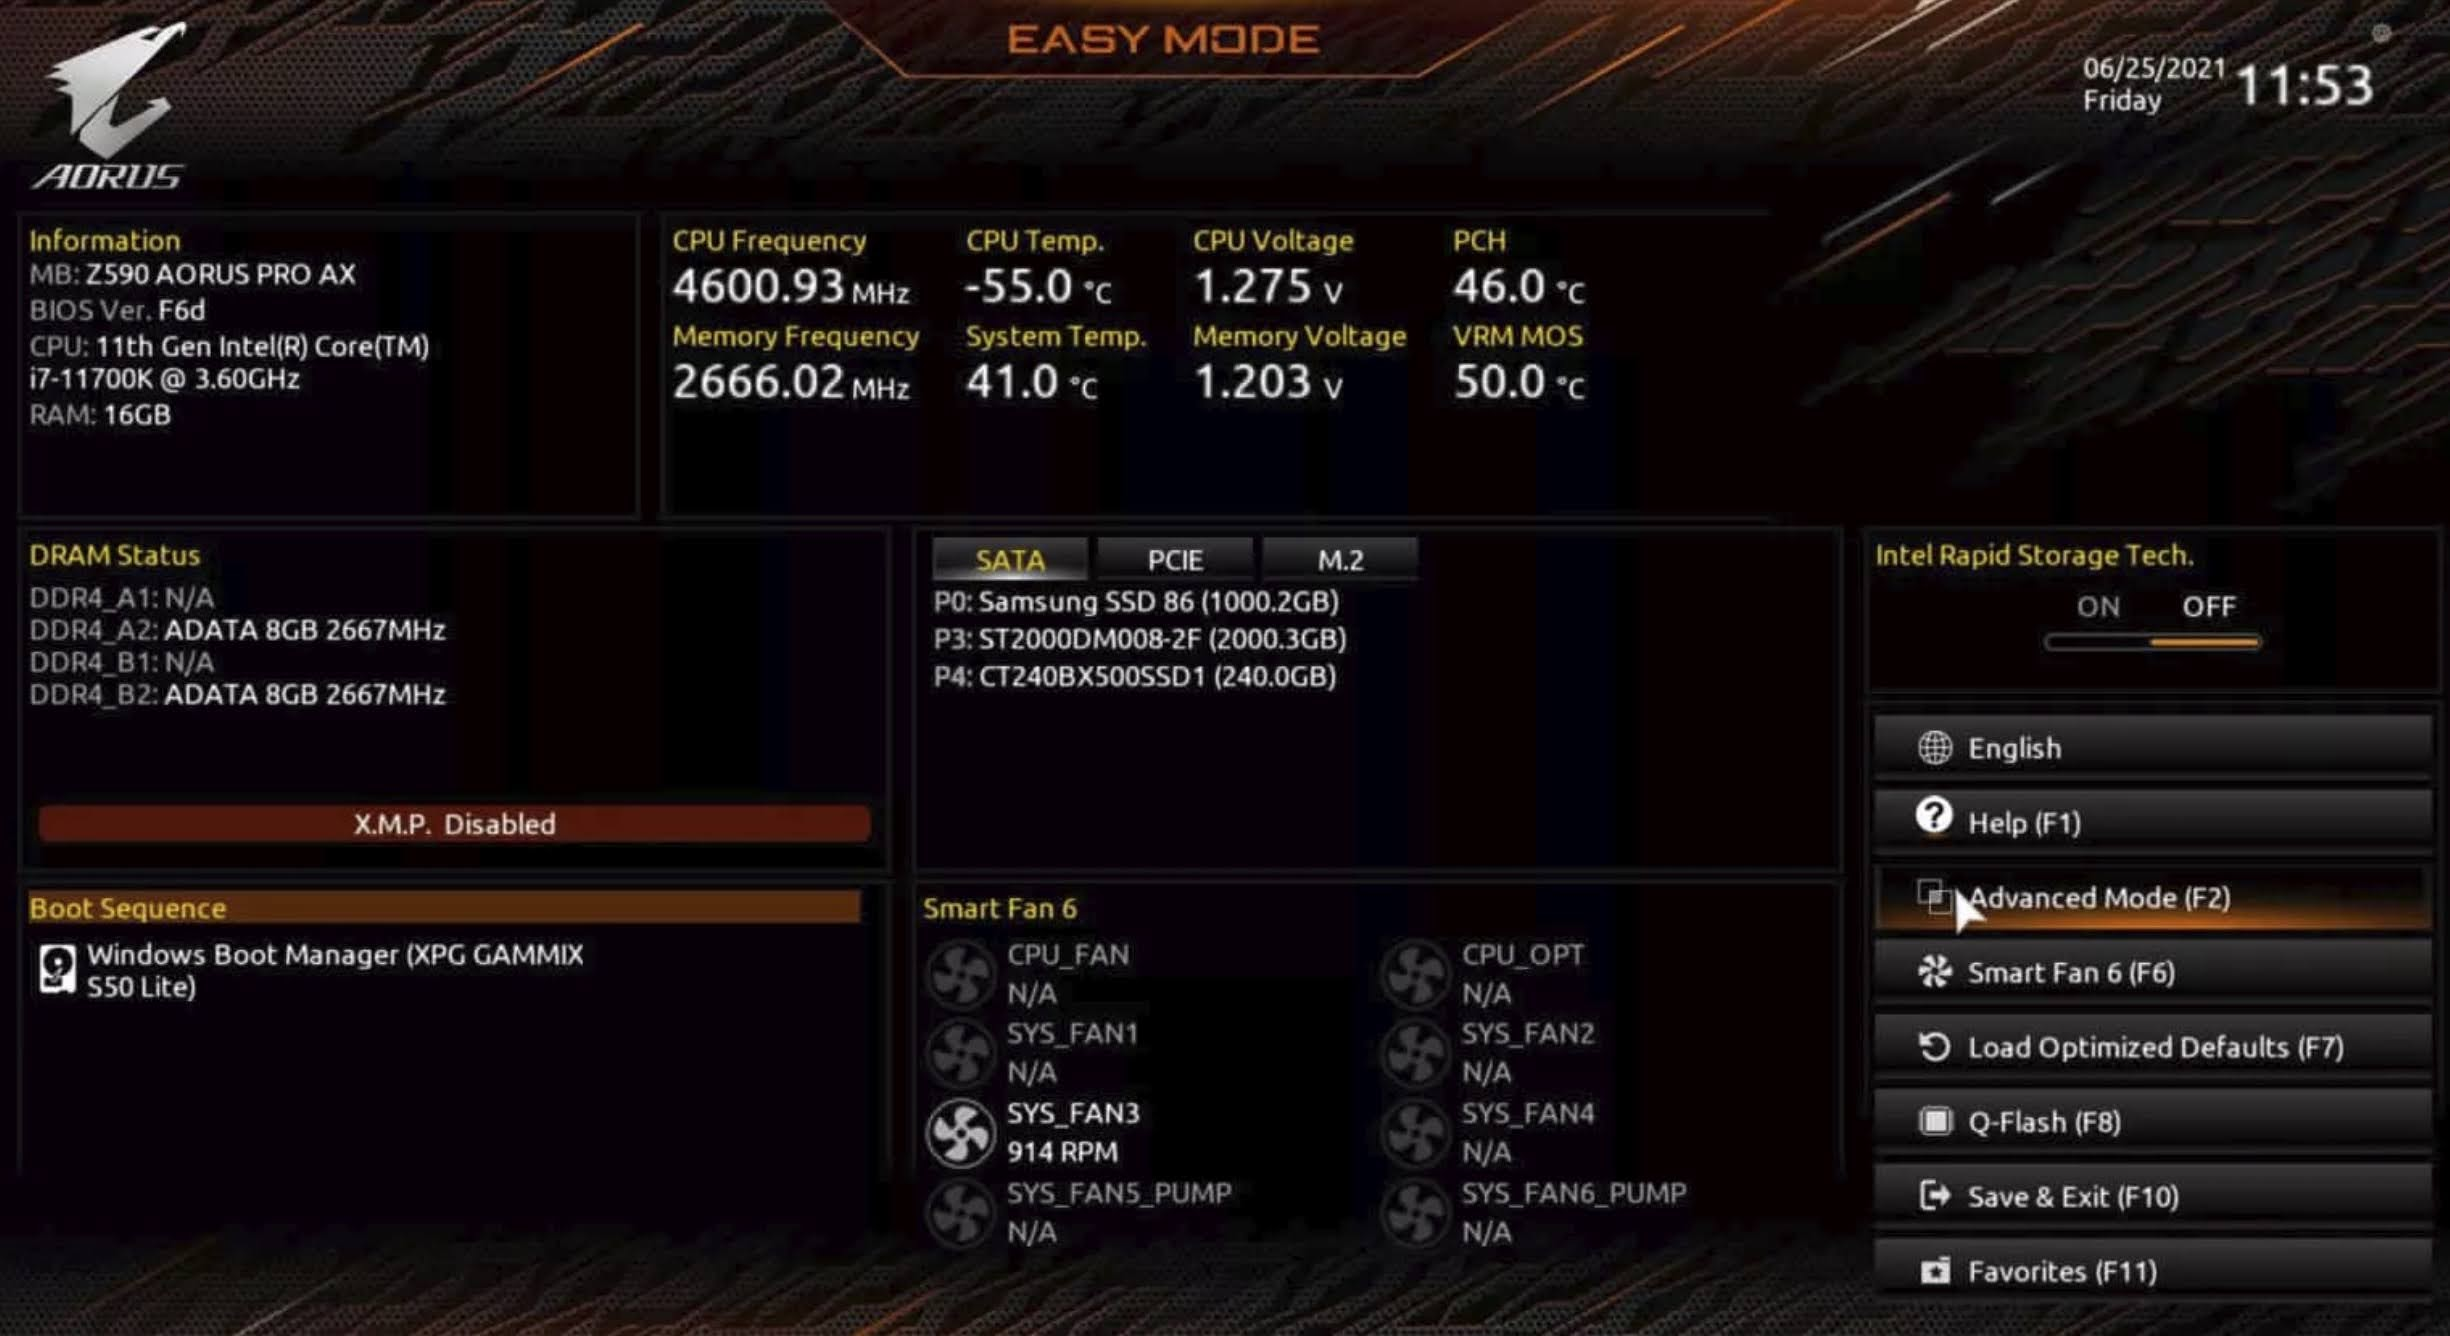 Enable TPM 2.0 for GIGABYTE motherboard using AORUS: The Easy Mode will show on the first screen, press F2 inside the BIOS or click on the Advanced Mode option in the sidebar to switch to Advanced mode.